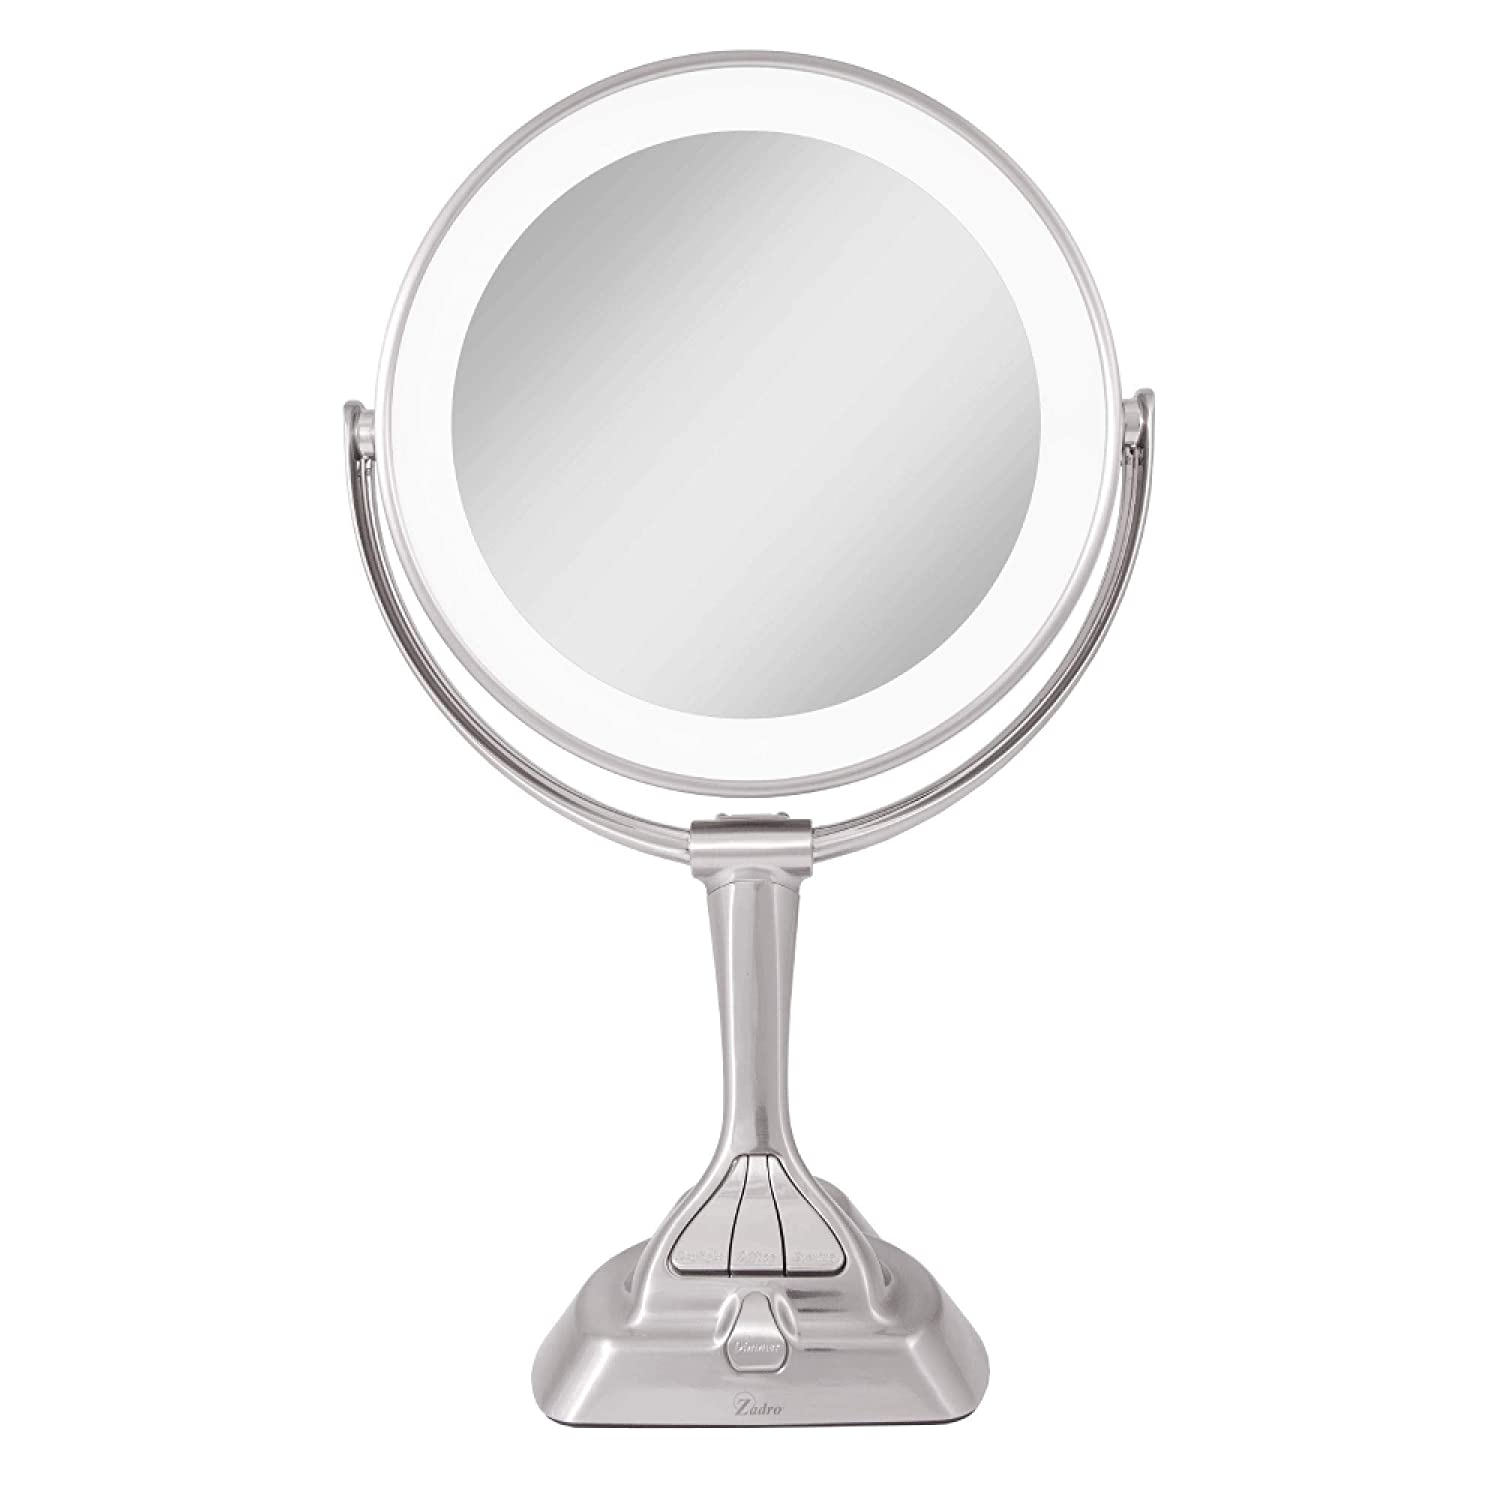 Zadro Led Light Dimmable Dual-sided Vanity Mirror, Satin Nickel